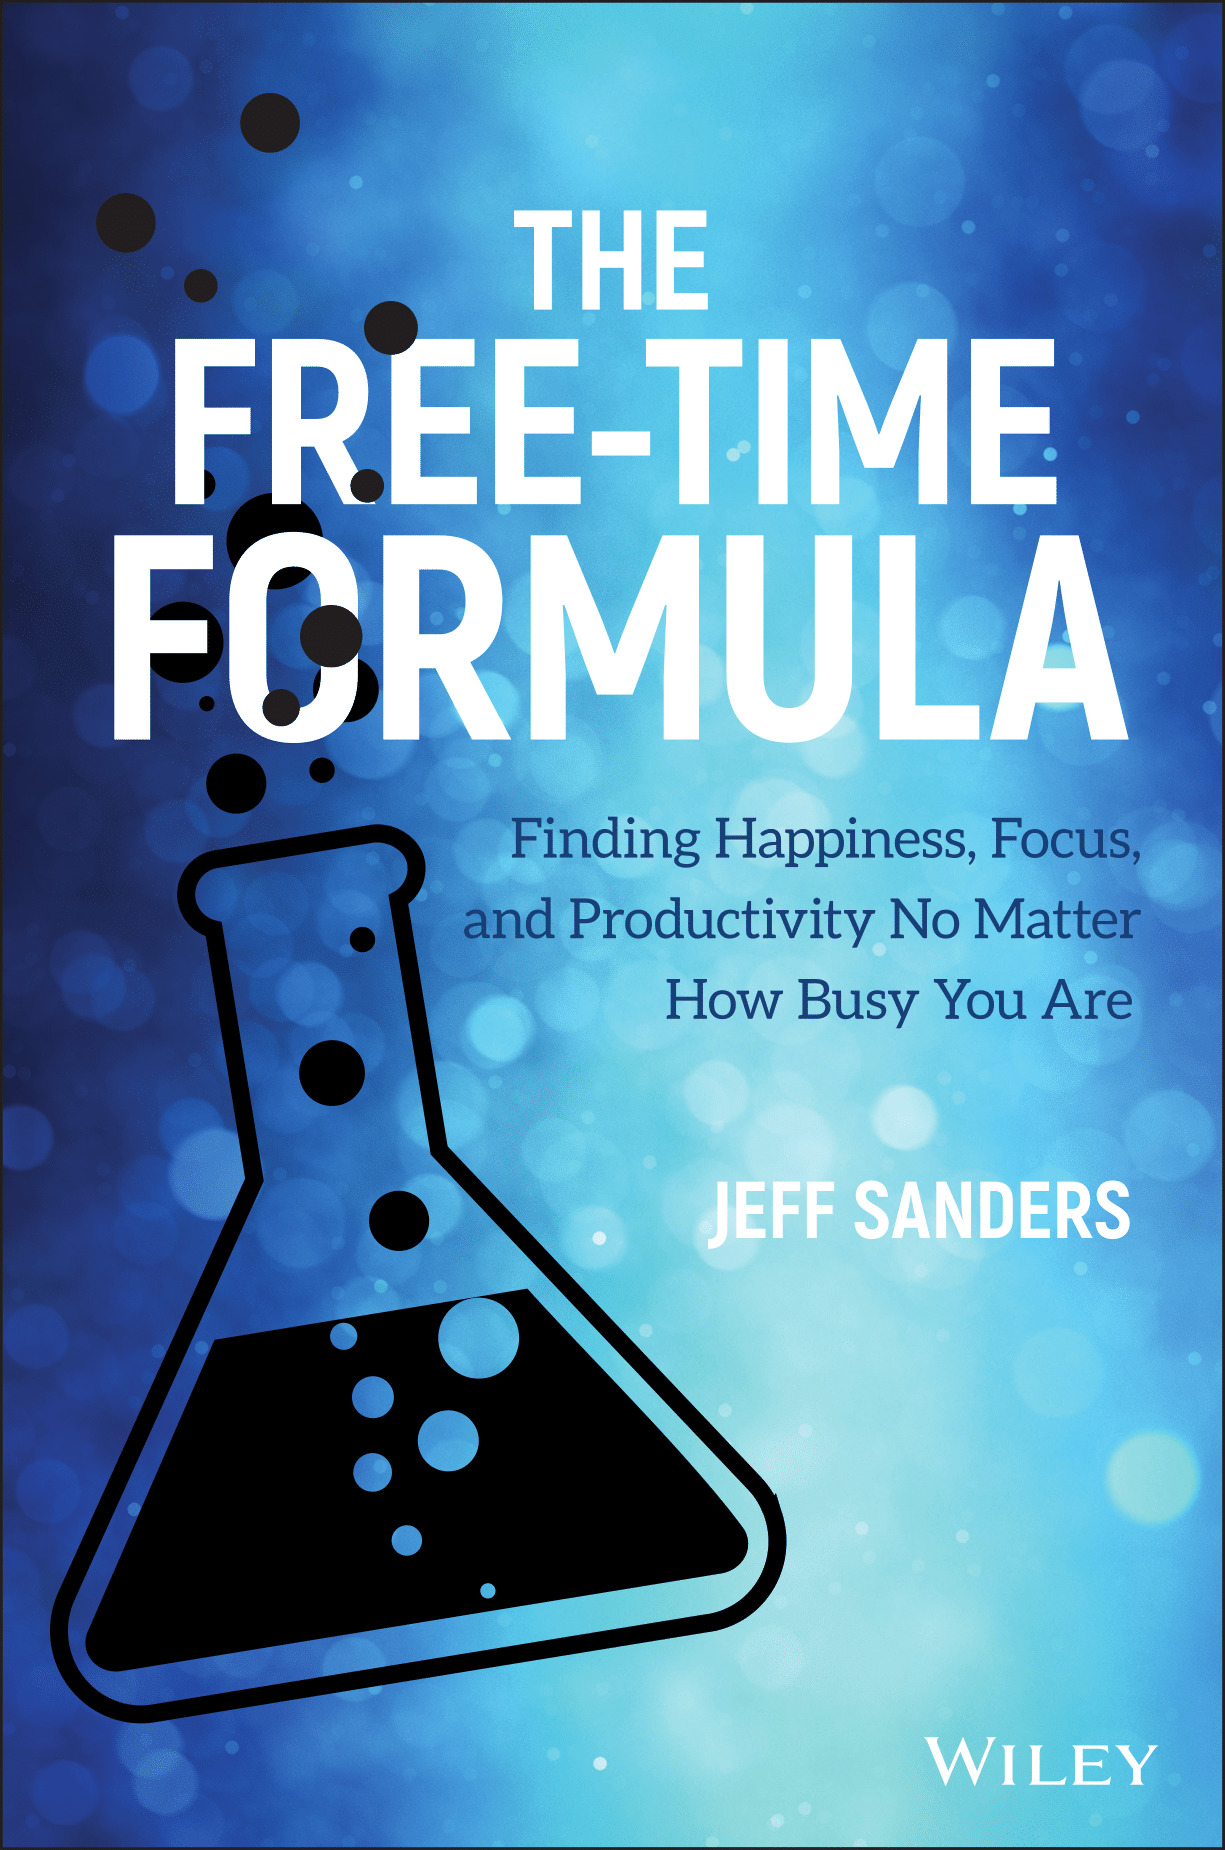 The-Free-Time-Formula-Finding-Happiness-Focus-and-Productivity-No-Matter-How-Busy-You-Are